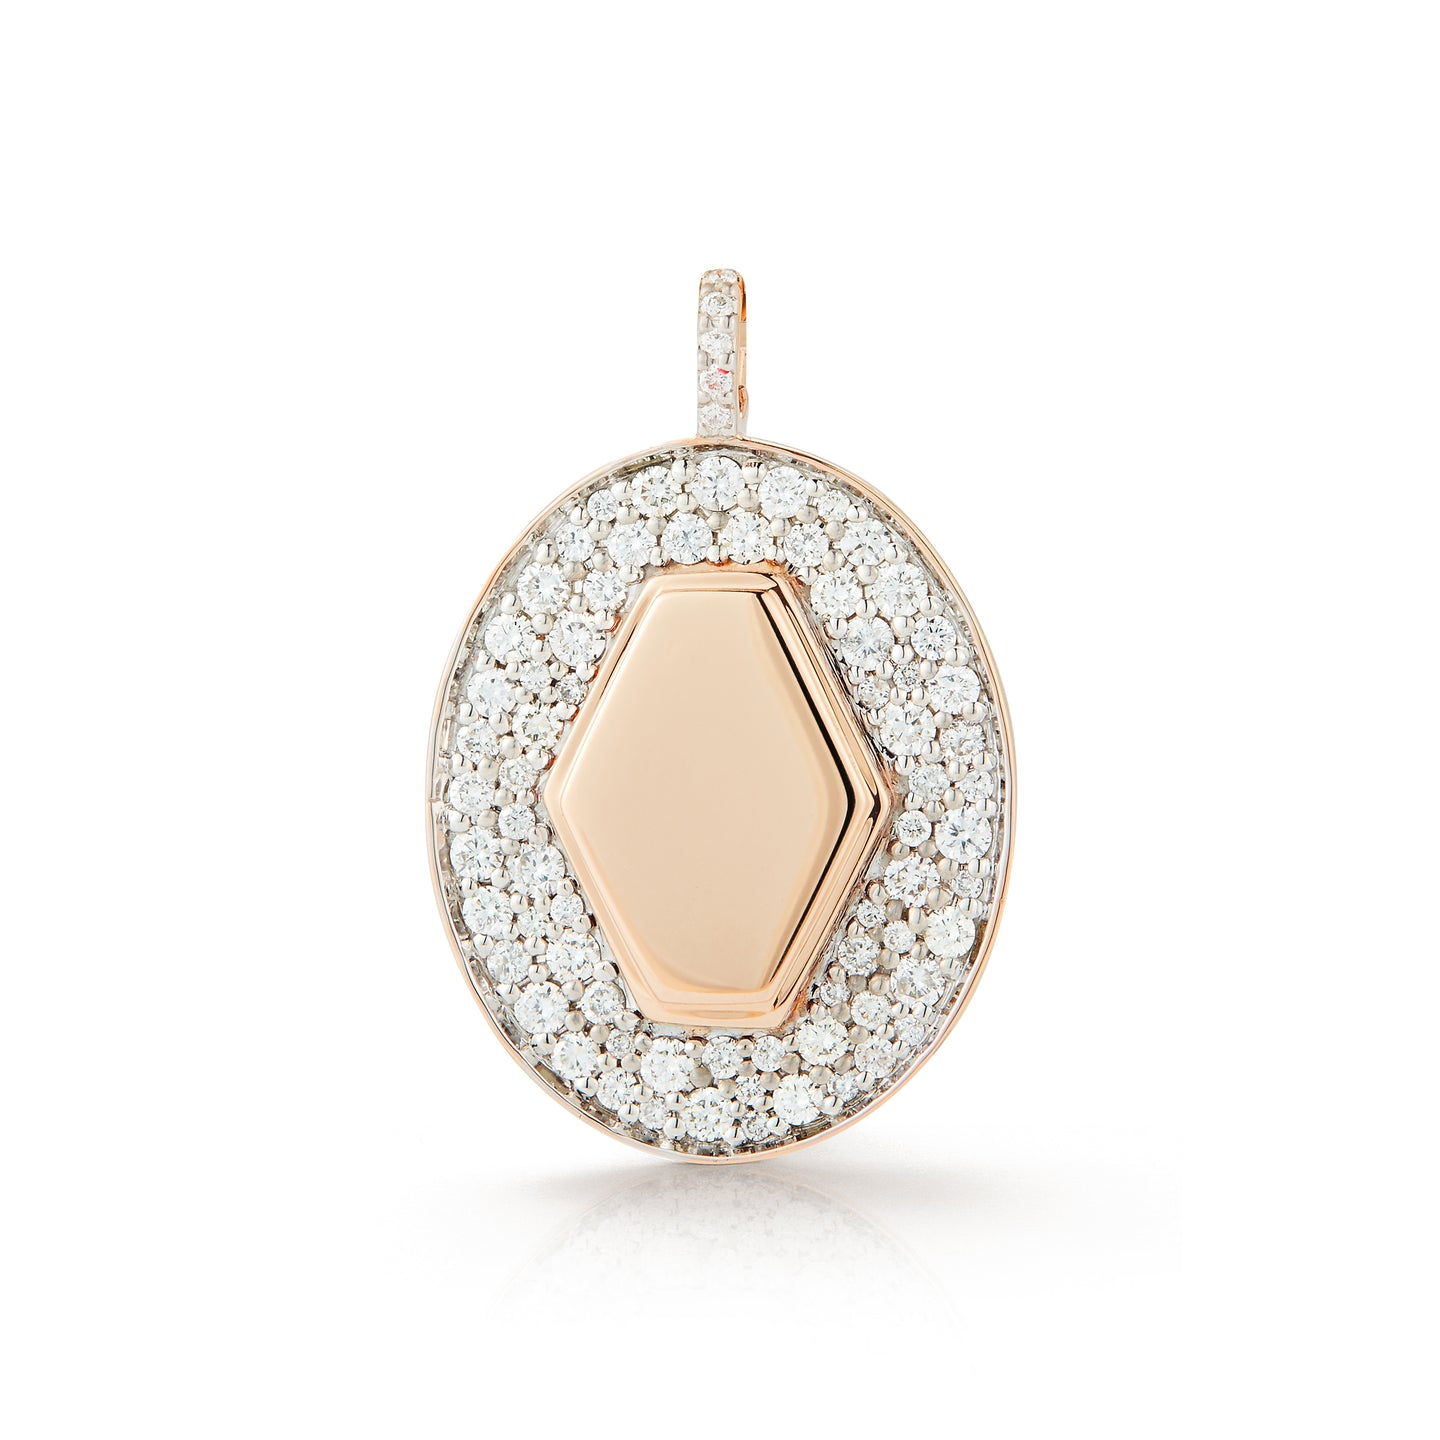 JULIAN 18K DIAMOND SIGNET CHARM